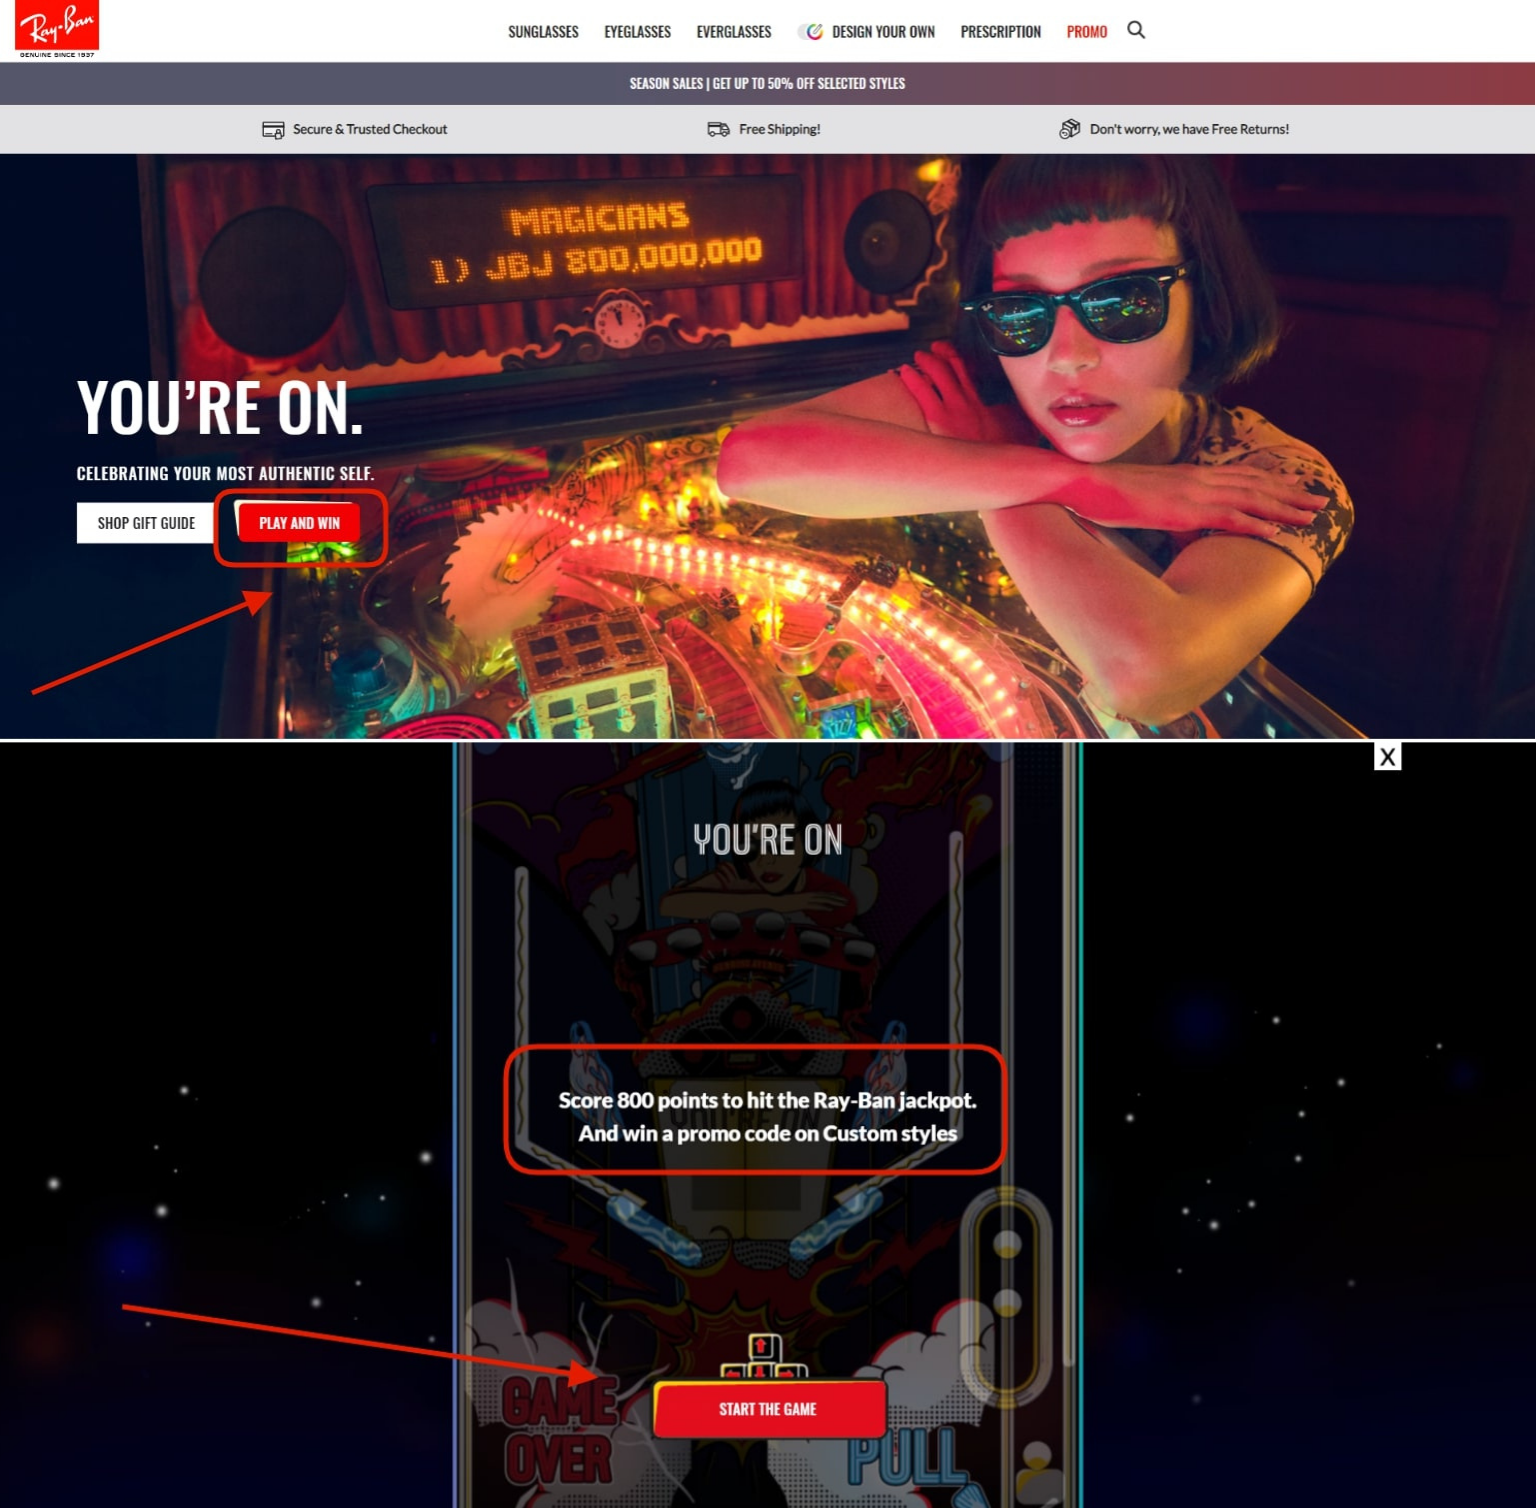 Pinball game on the official Ray-Ban website